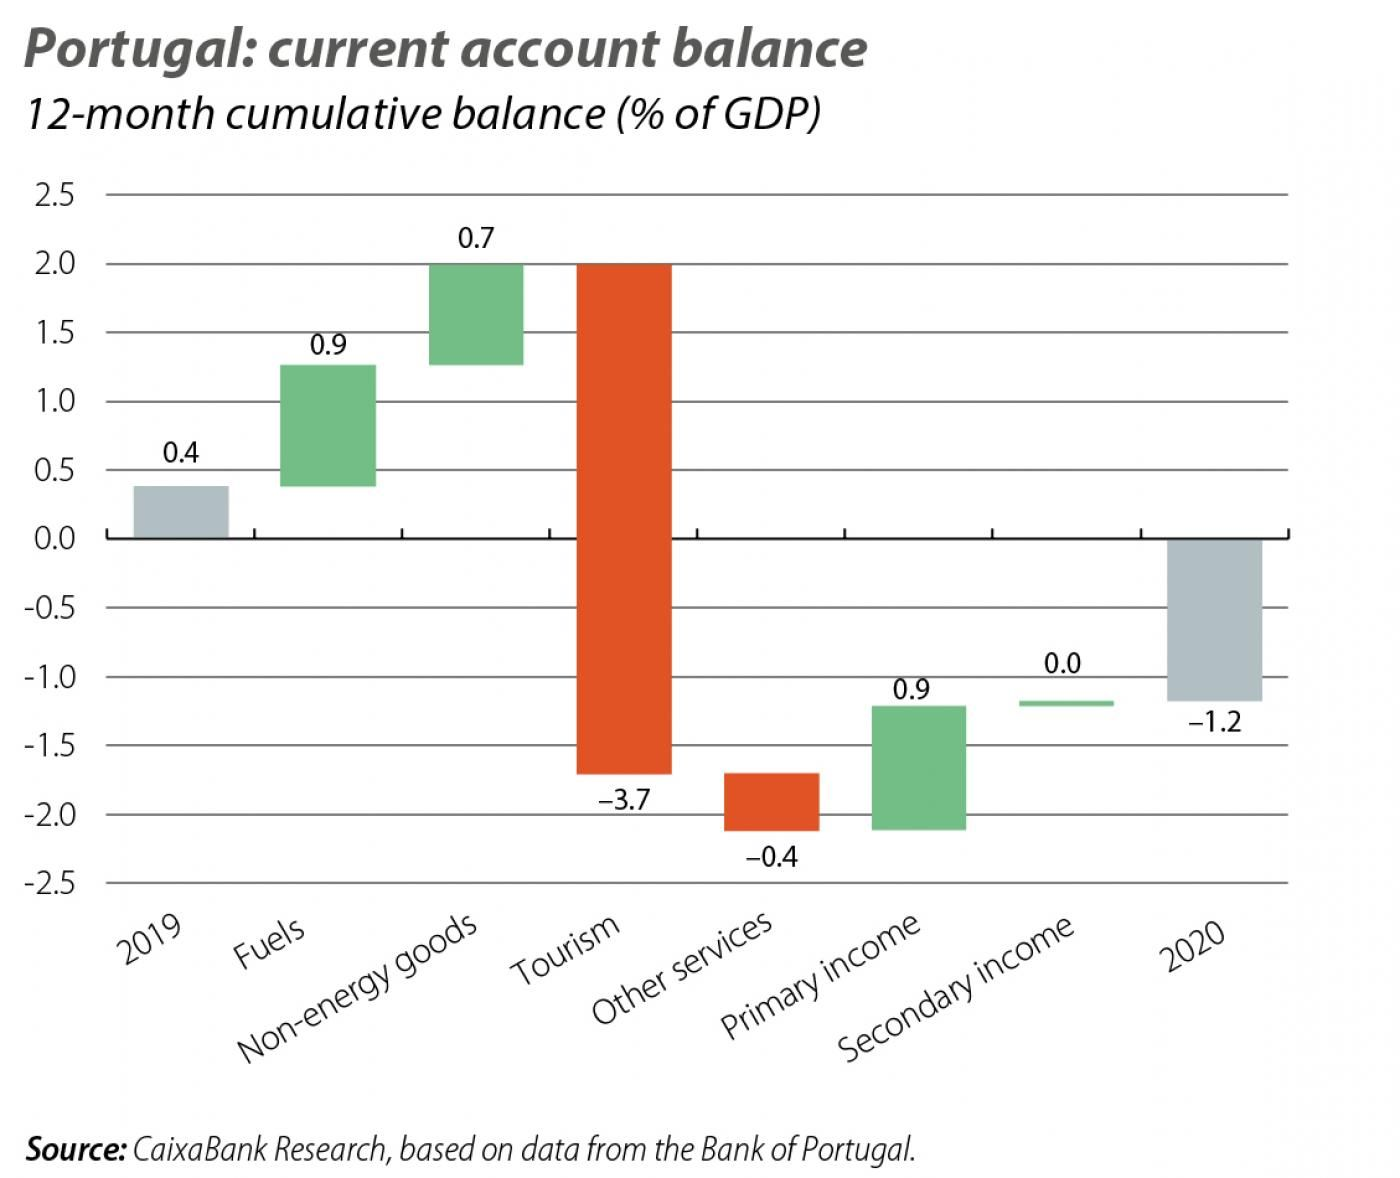 Portugal: current account balance